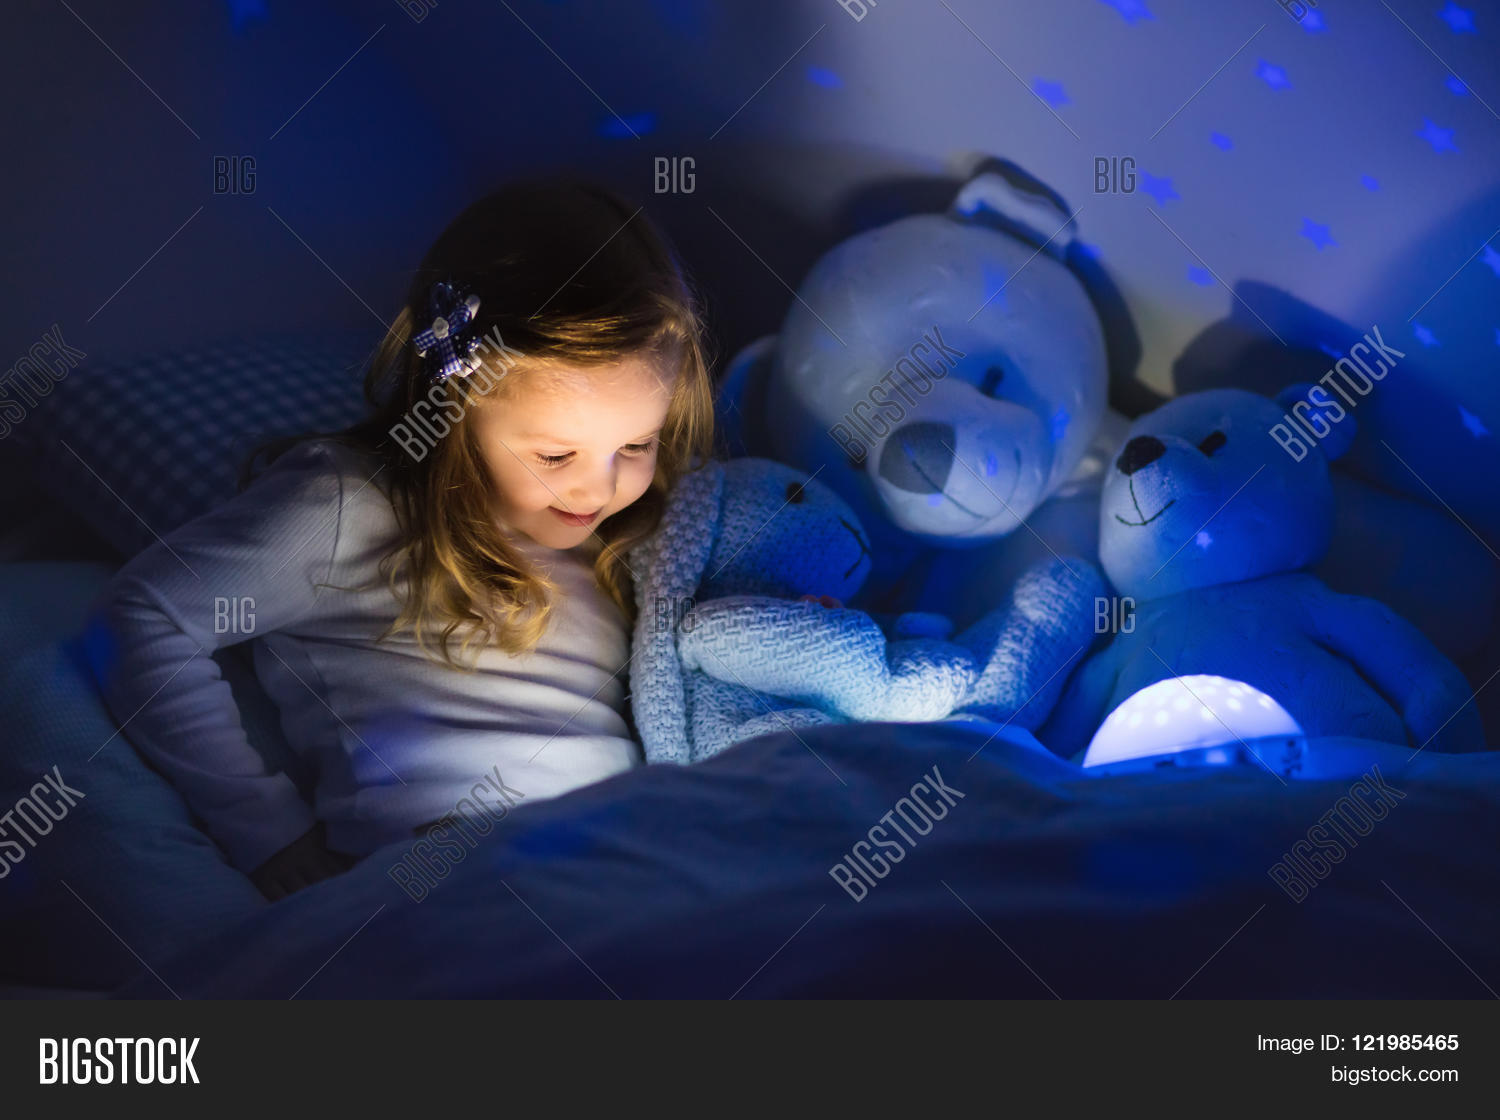 Little Girl Reading Book Bed. Dark Image  for Little Girl With Lamp  76uhy